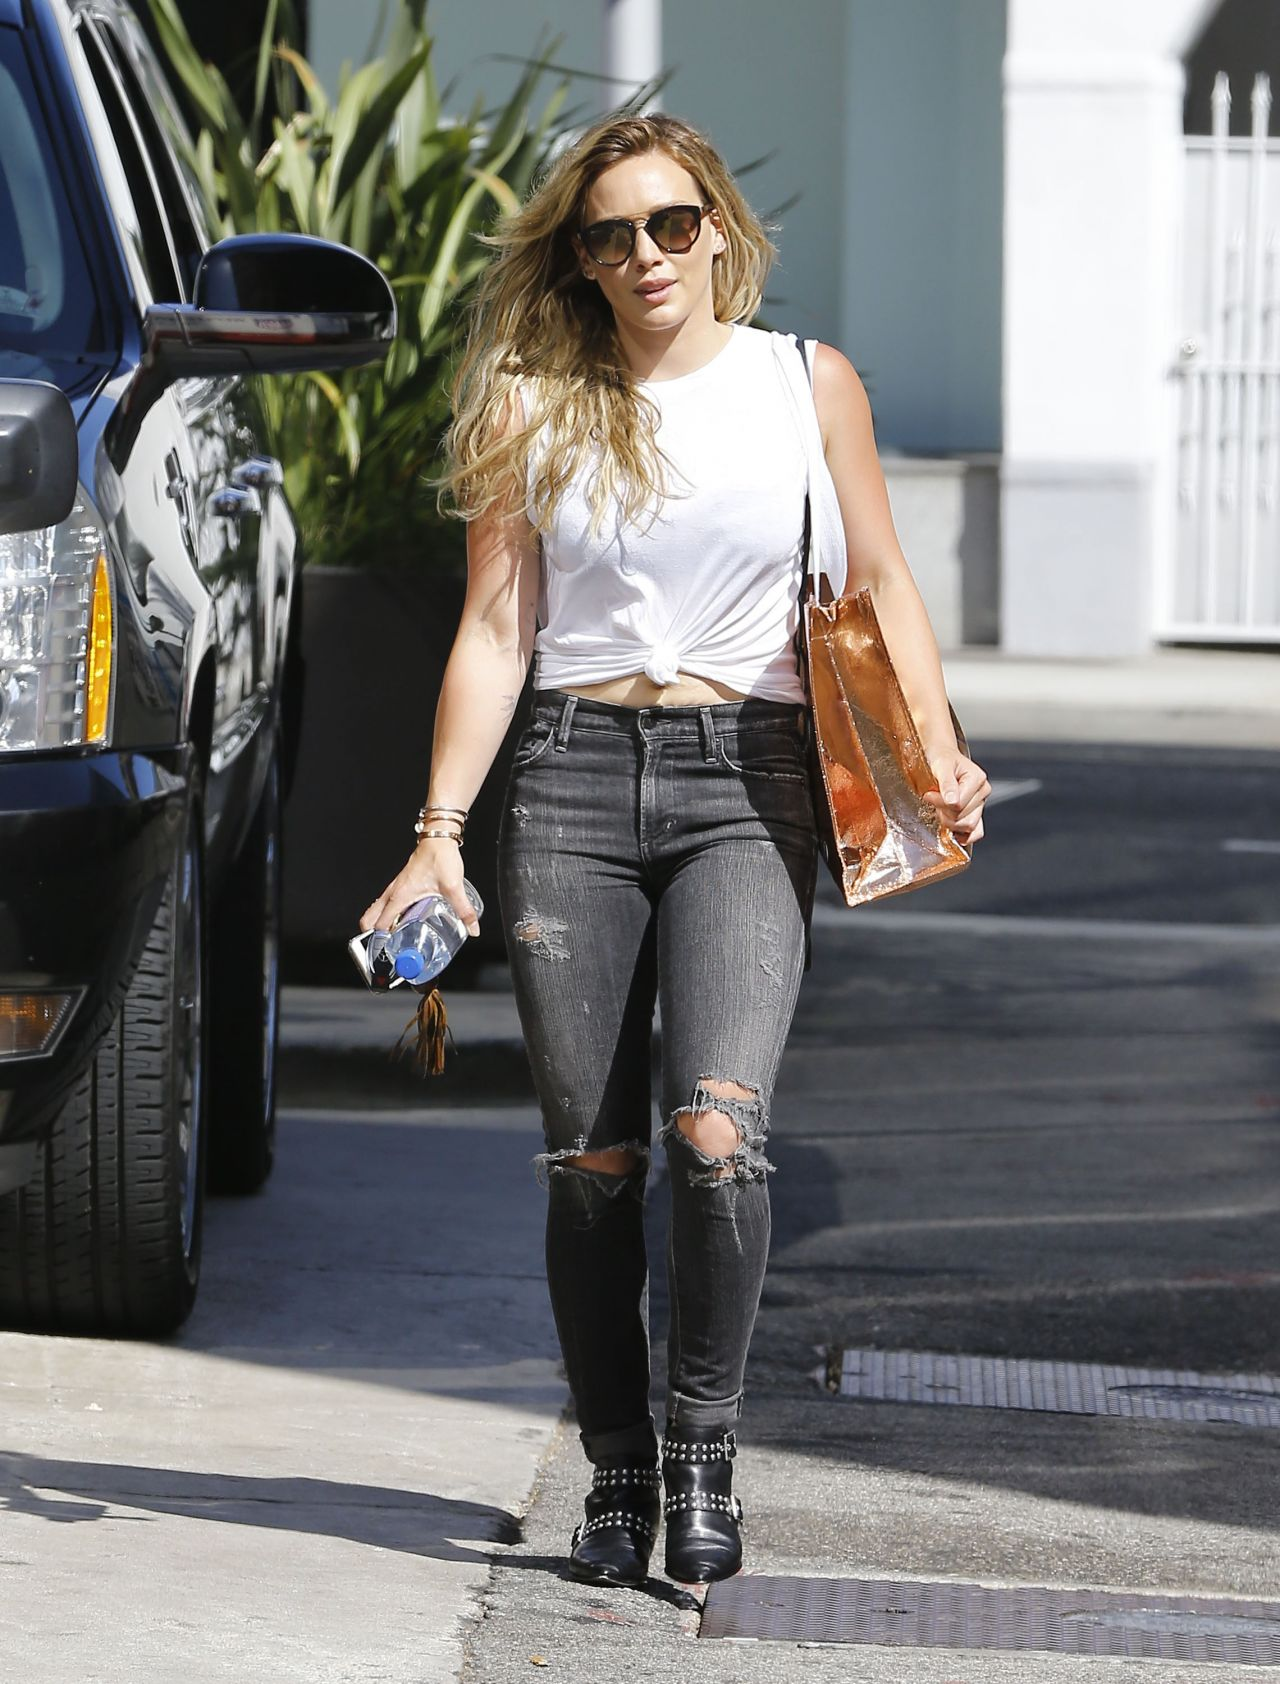 Hilary duff street style out in beverly hills august 2015 Fashion celebrity street style